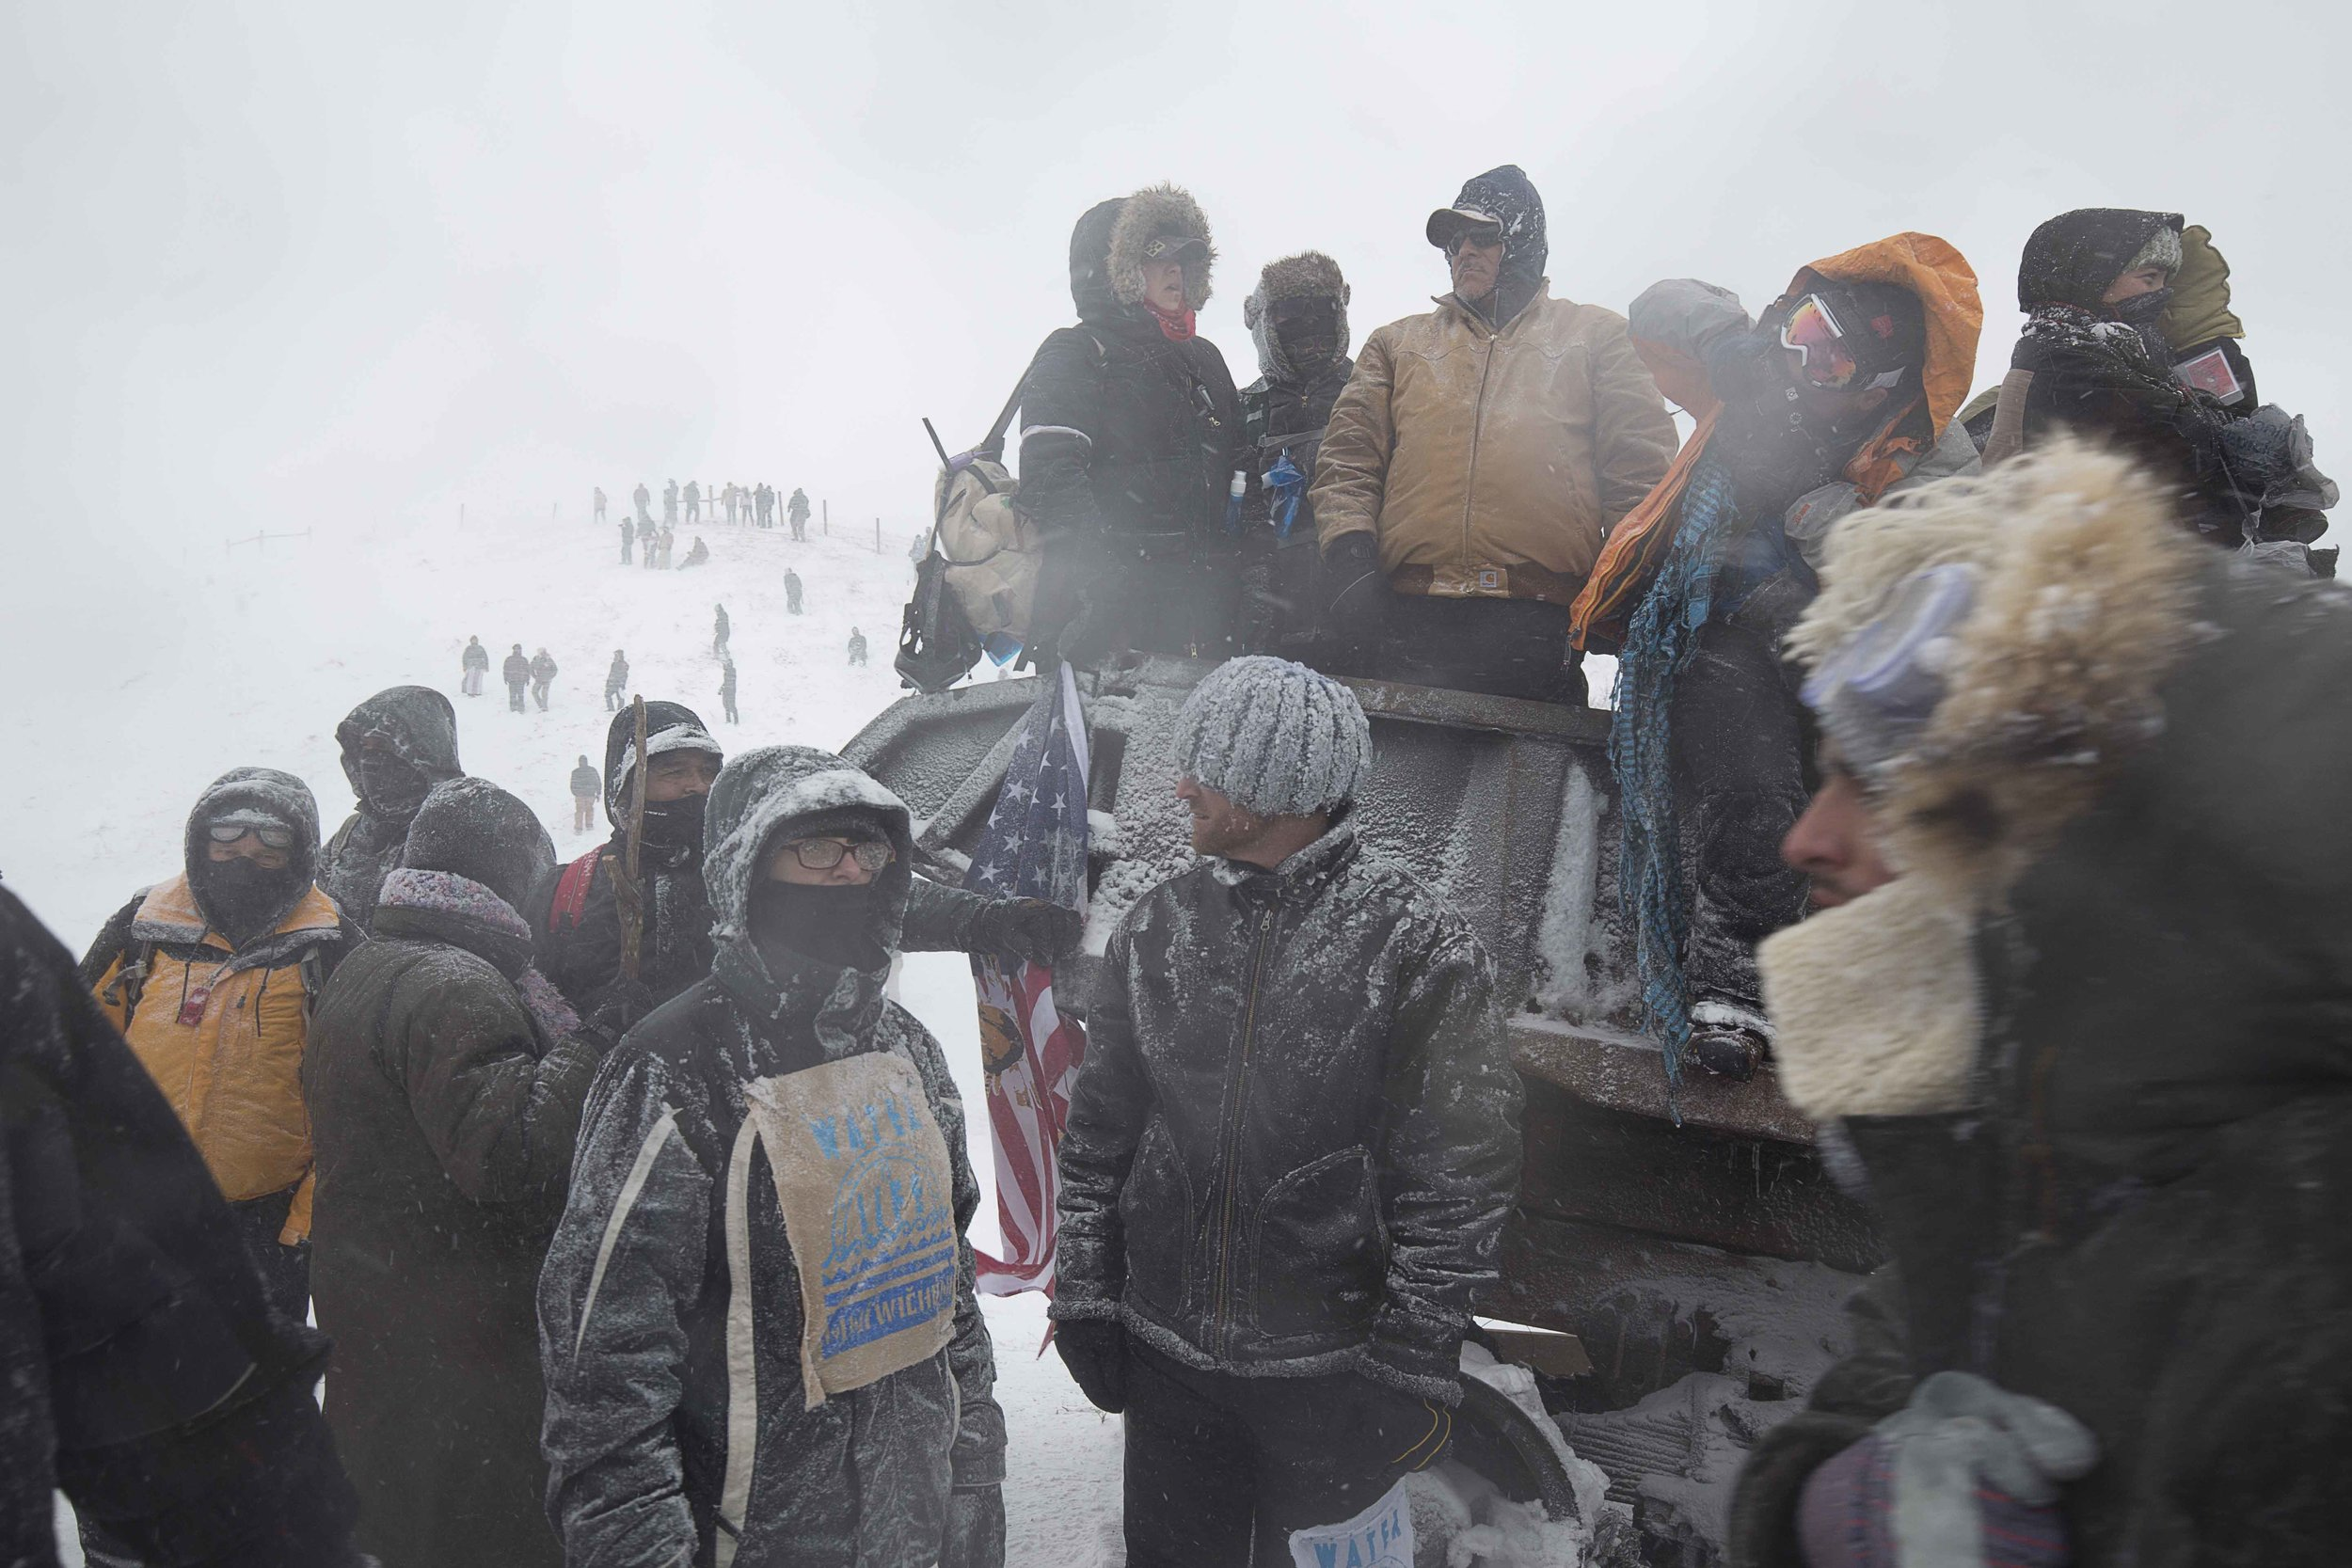 """Water Protectors and veterans from Oceti Sakowin protest camp gather along highway 1806 on December 5, 2016 during an """"unsanctioned"""" protest action, spurred by veterans who arrived the day before."""